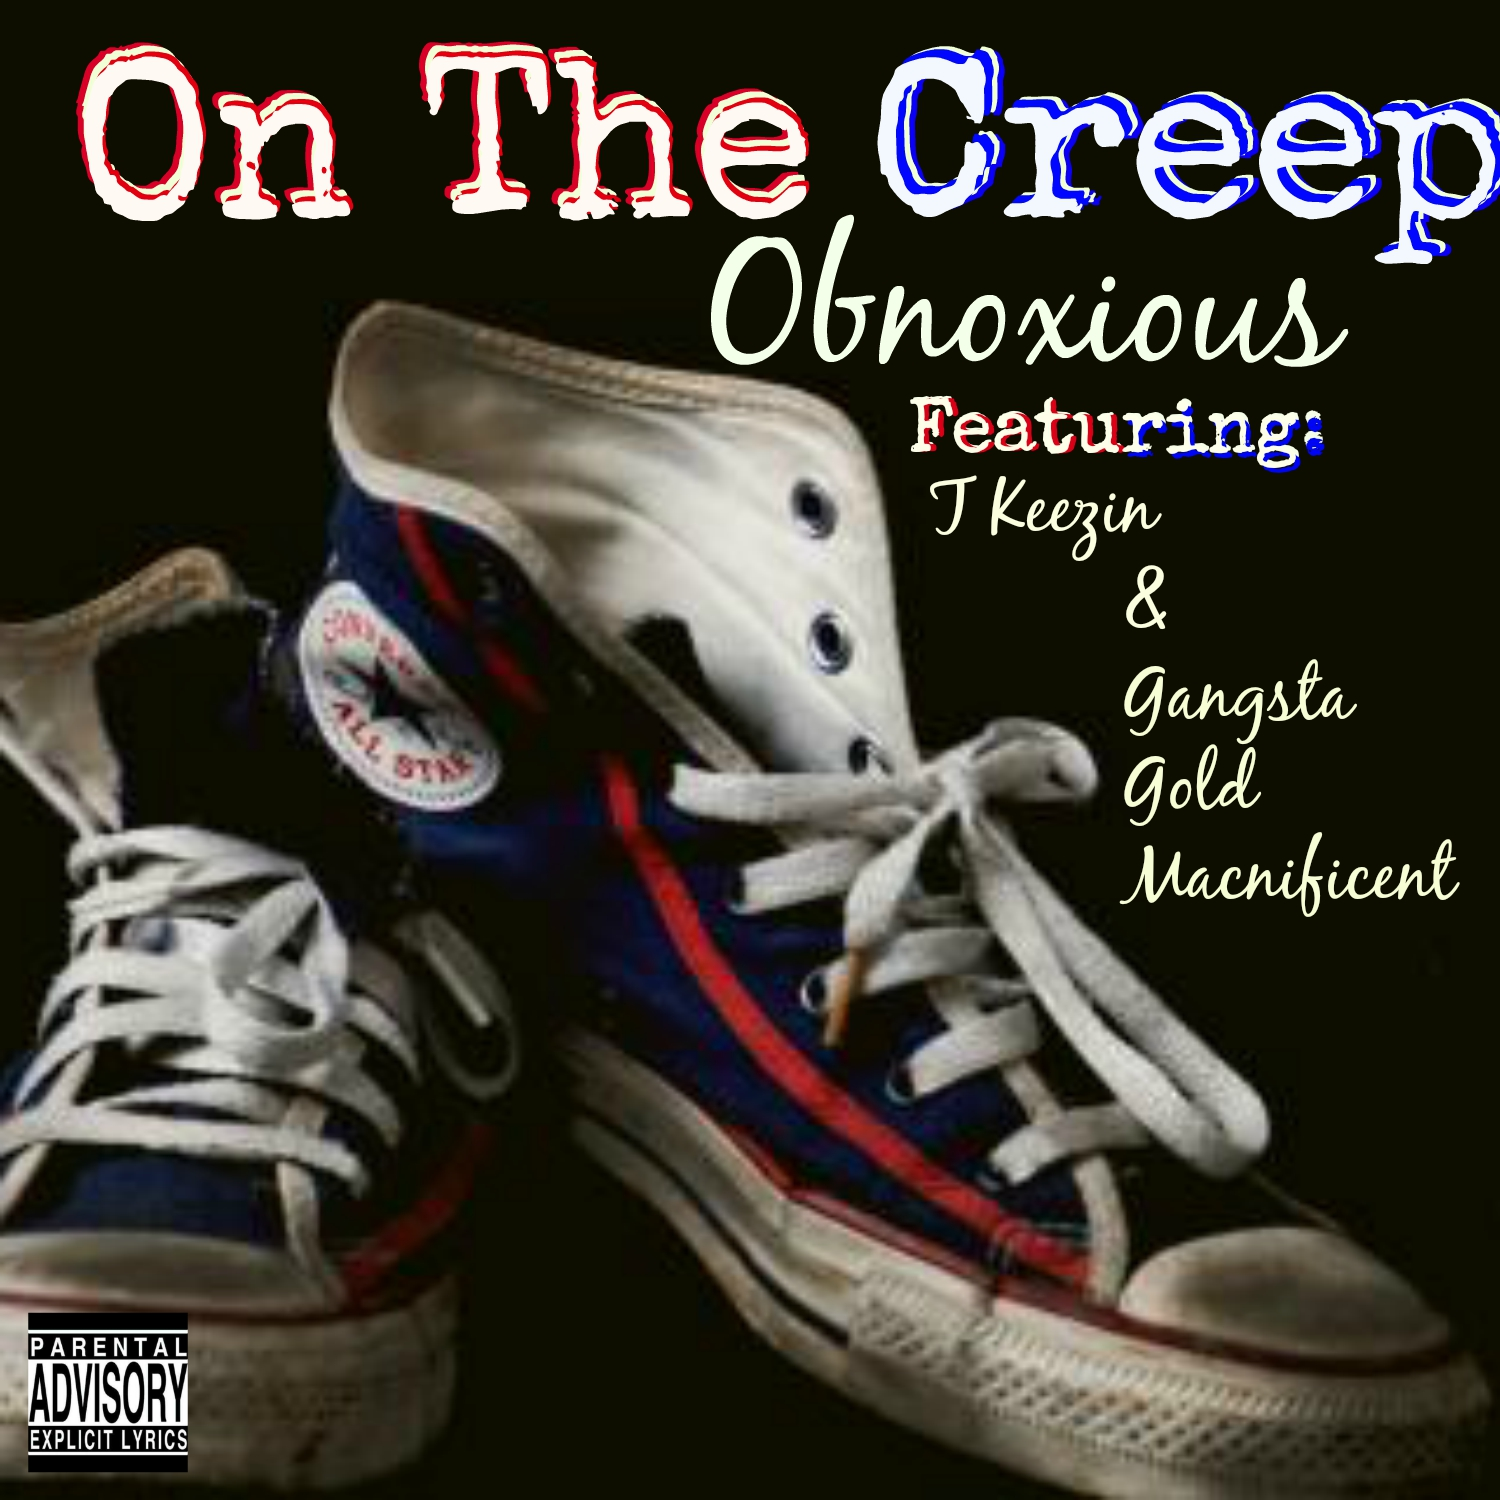 On The Creep